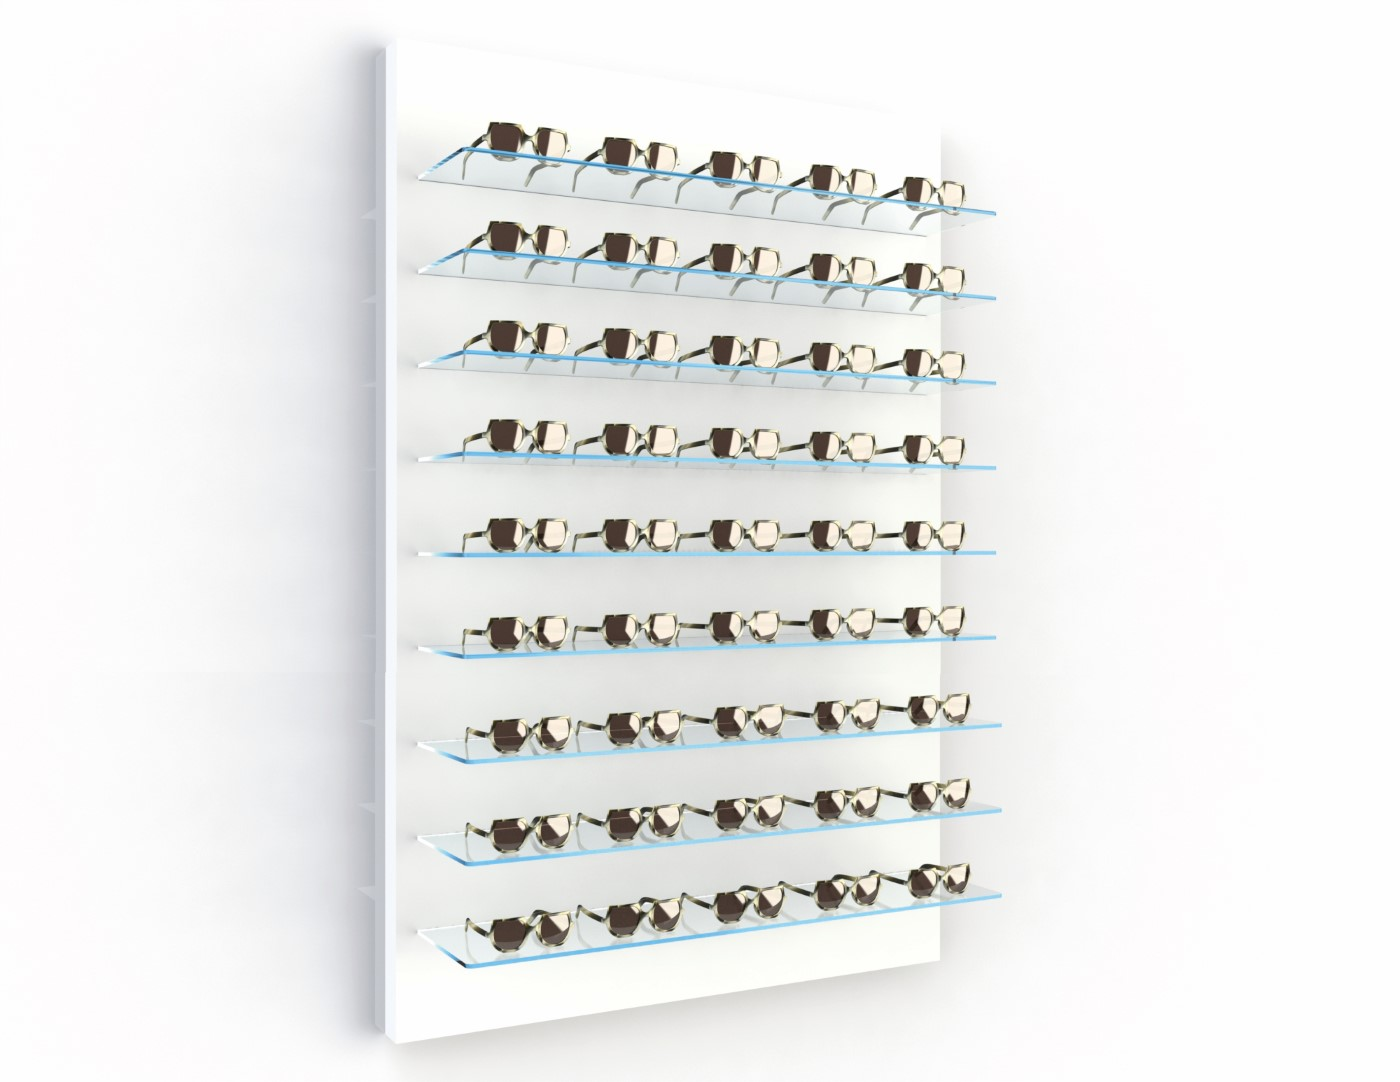 <strong>#58130W</strong><br>9x 6mm crystal clear shelves<br>40 frames